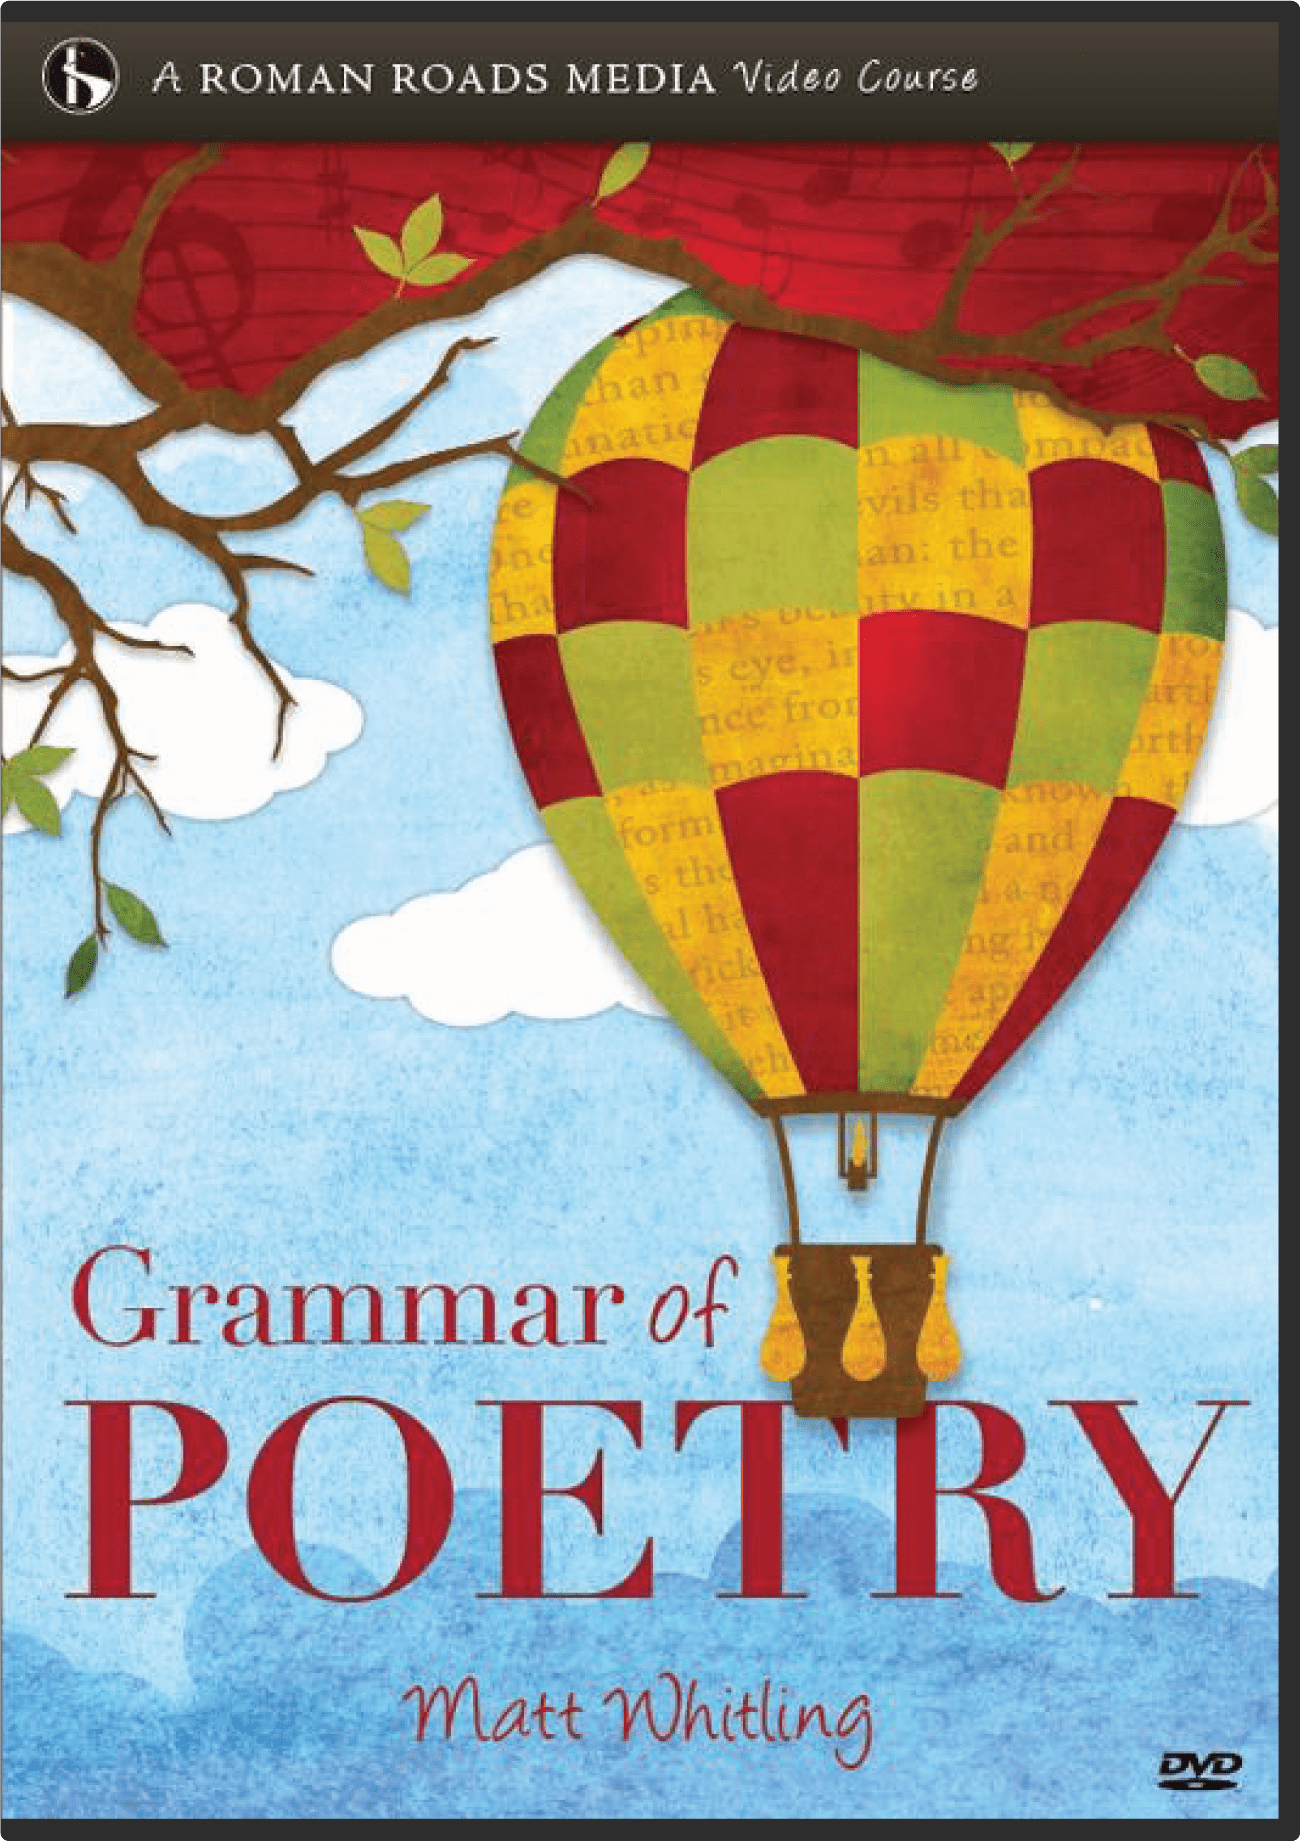 The Grammar of Poetry DVD